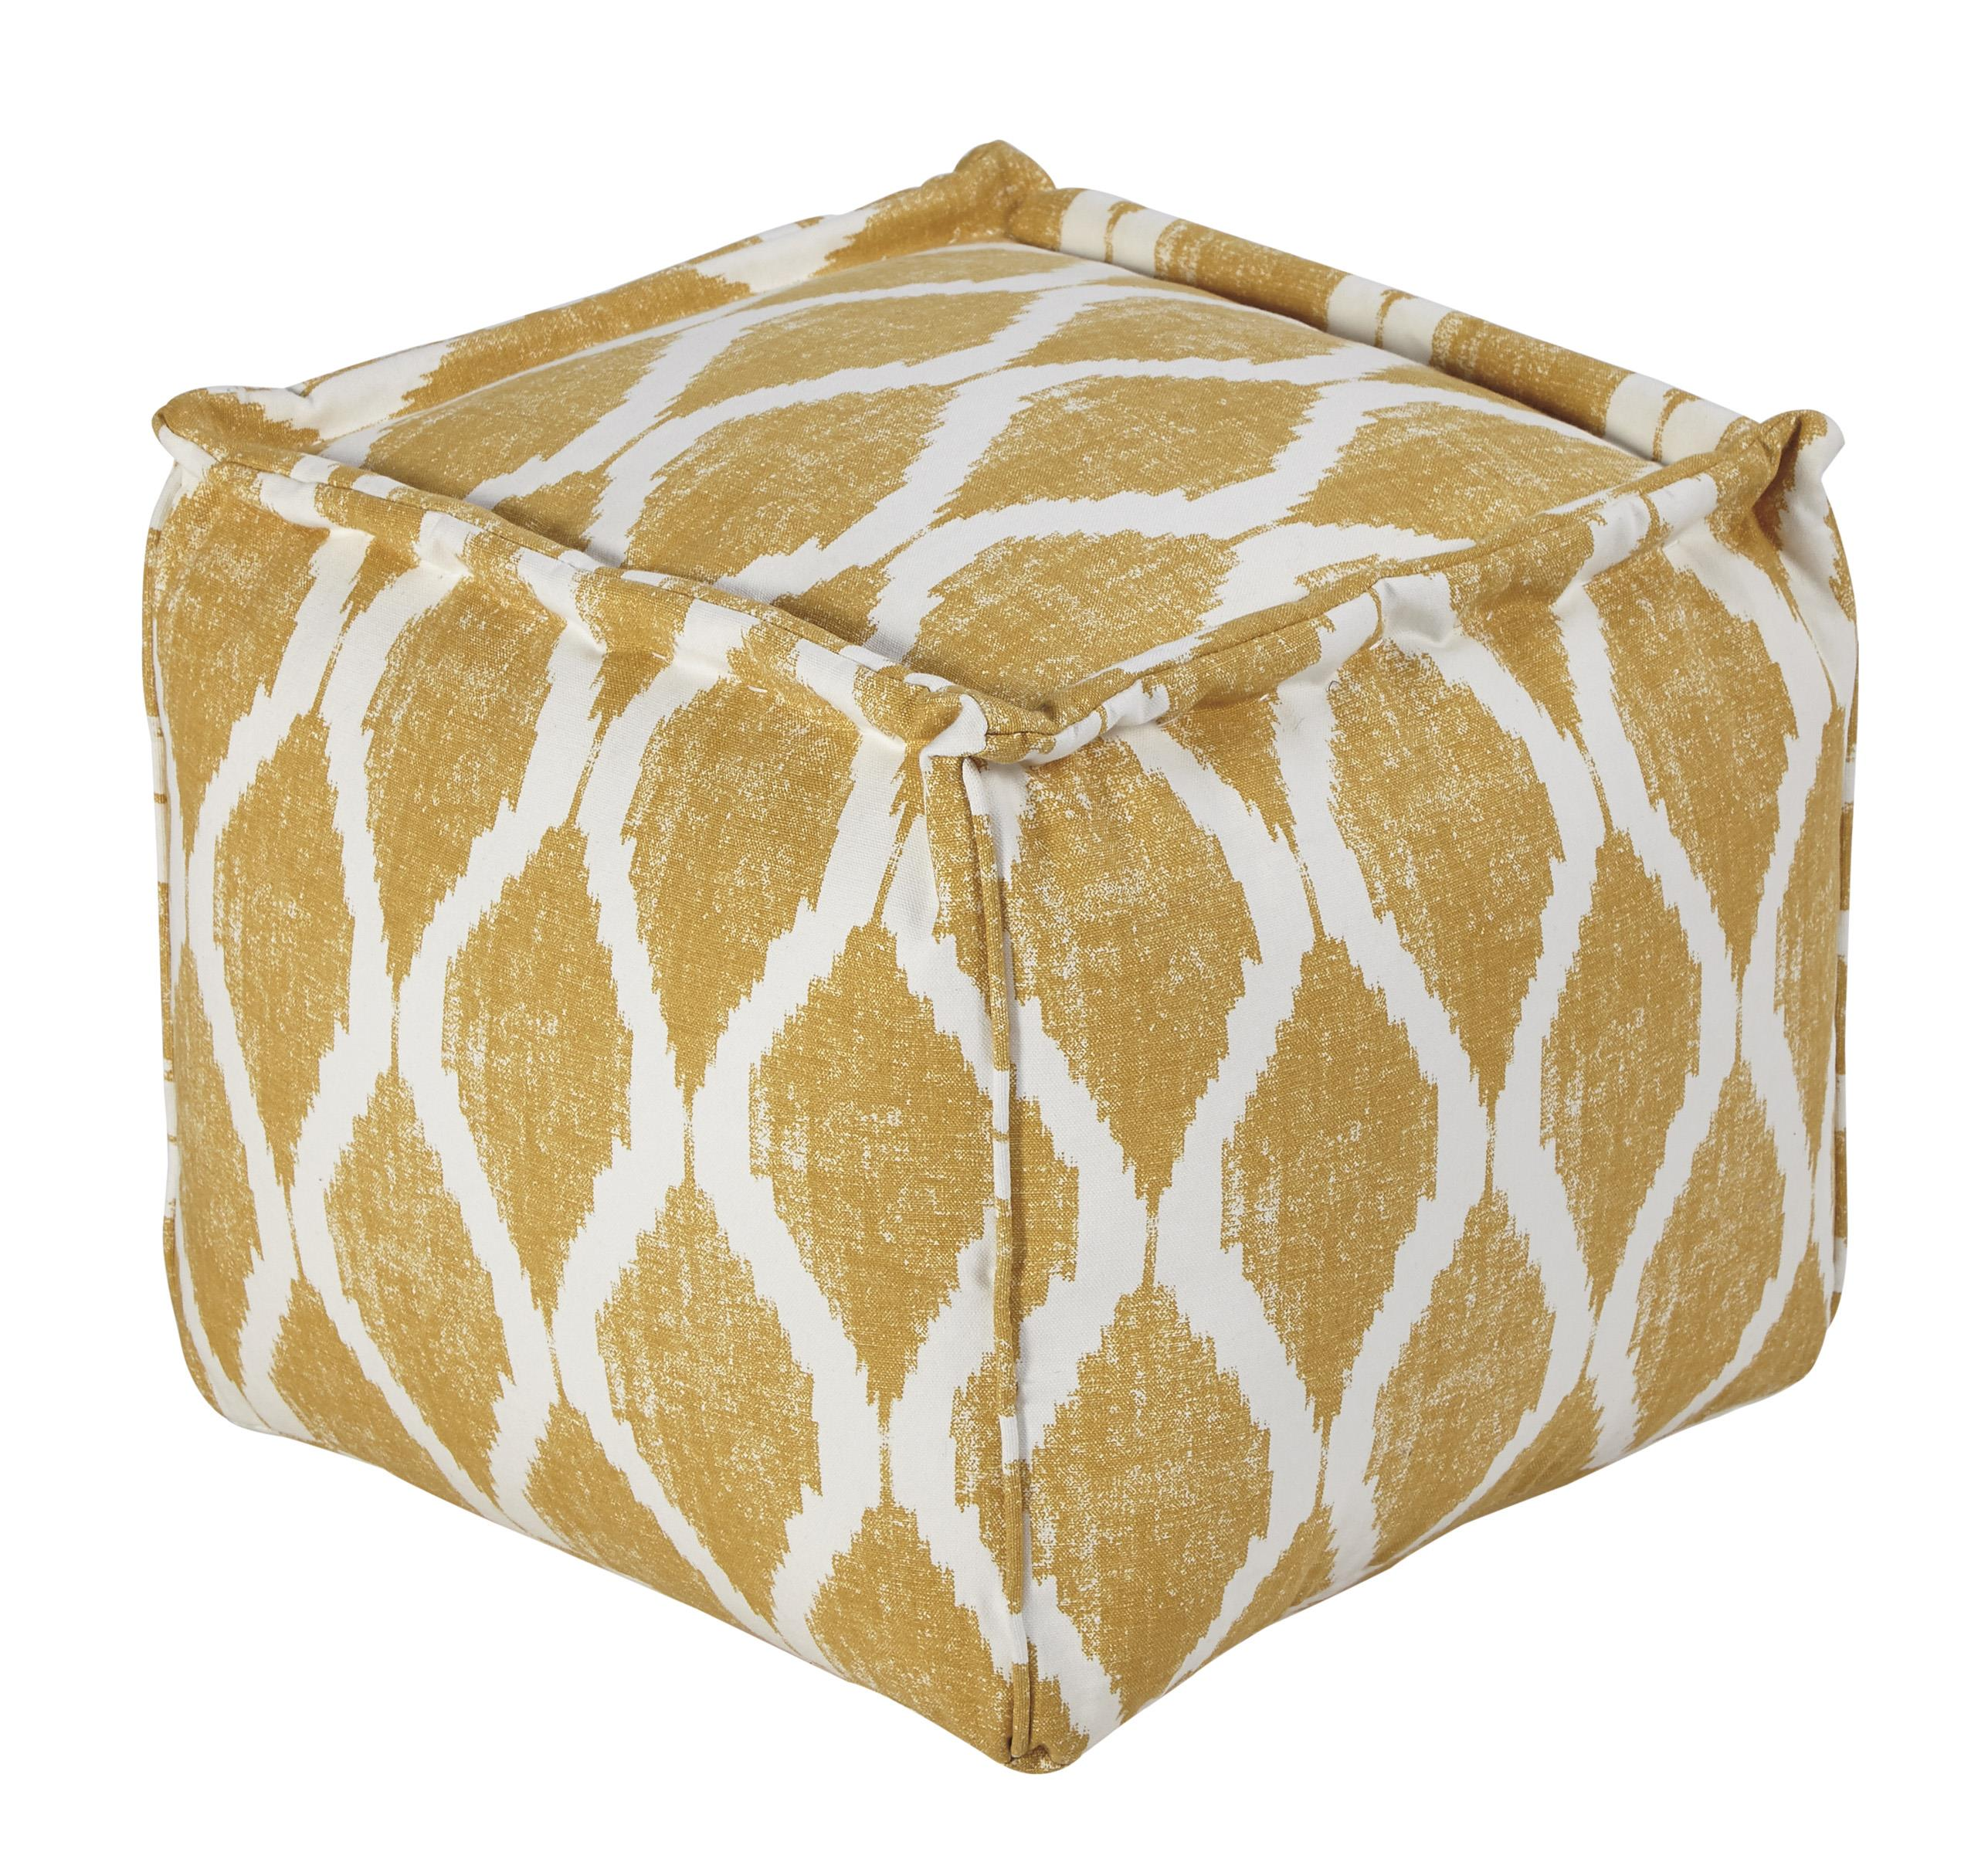 Signature Design by Ashley Poufs Bruce - Yellow/White Pouf - Item Number: A1000547